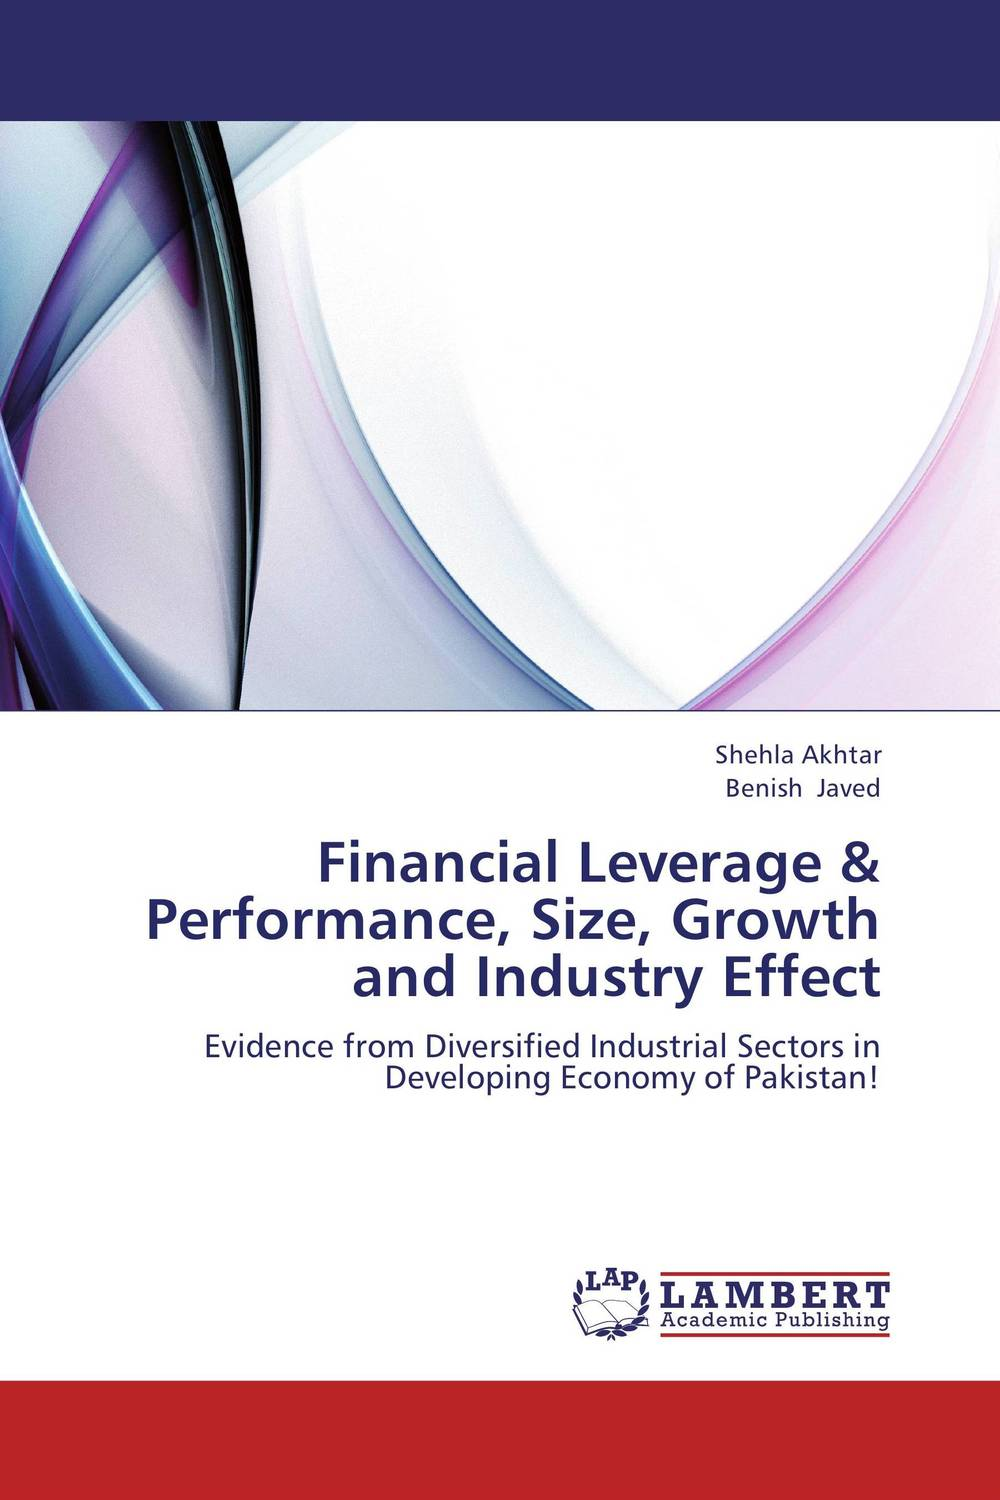 Financial Leverage & Performance, Size, Growth and Industry Effect